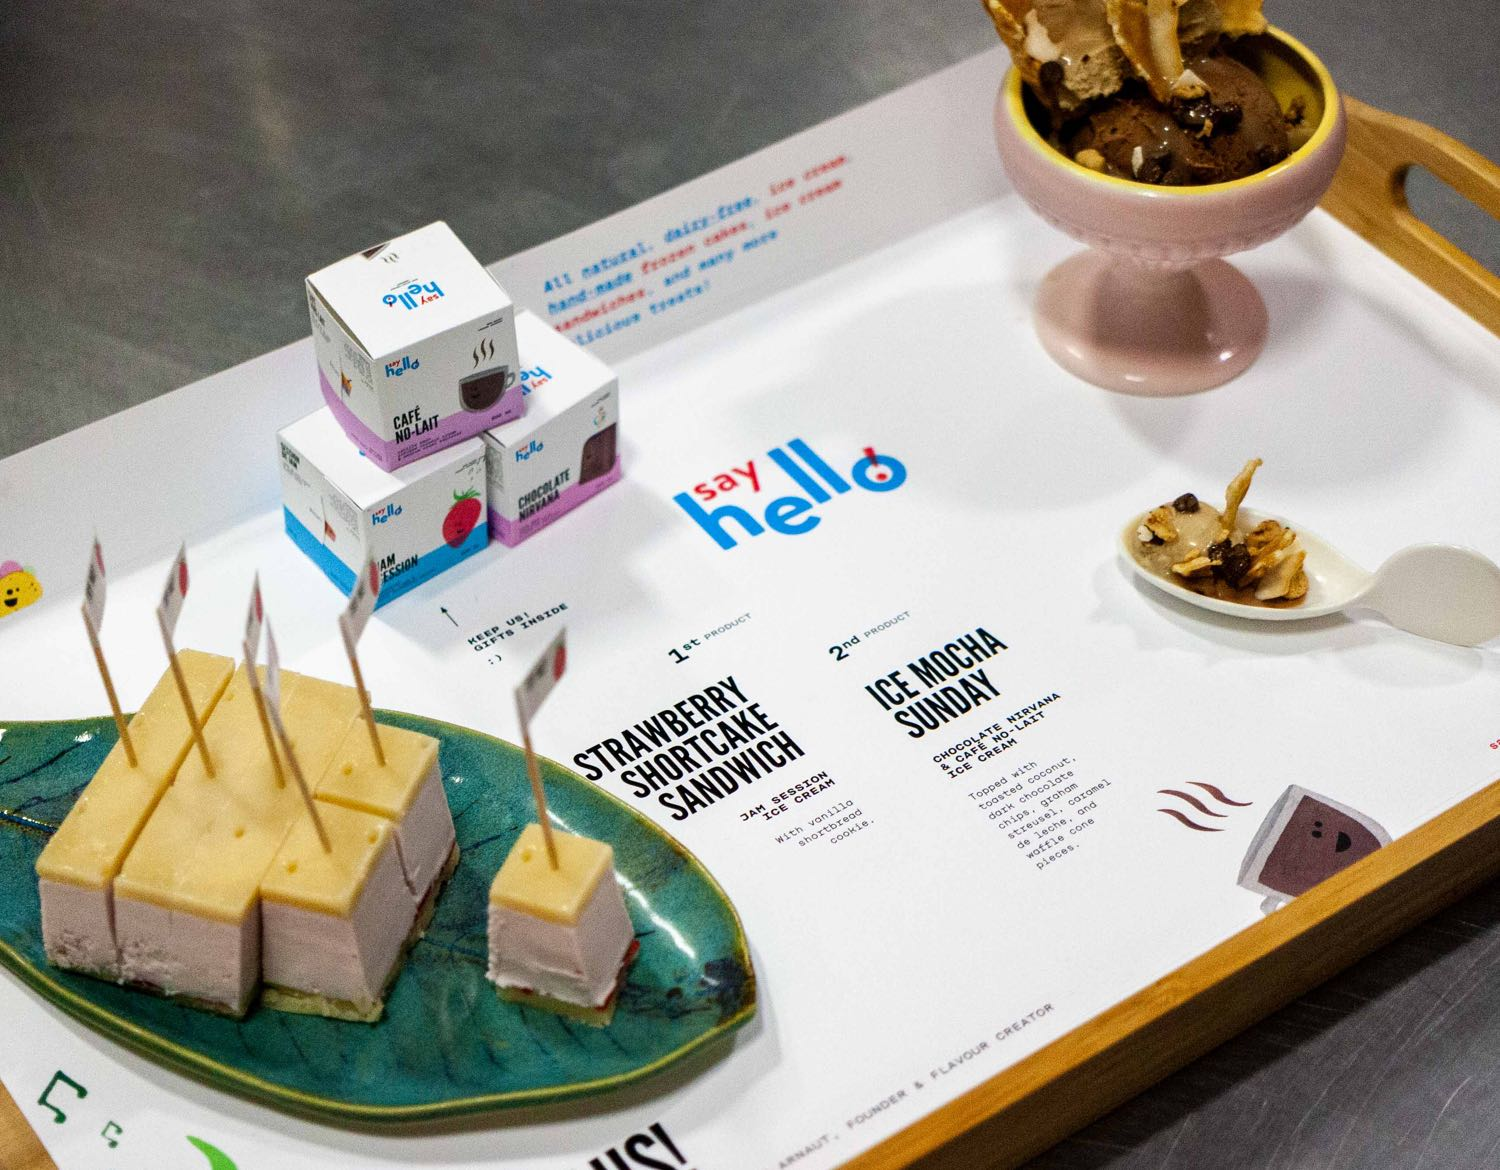 Say Hello Plating Presentation for BC Product of the Year Awards — by Dima Yagnyuk.